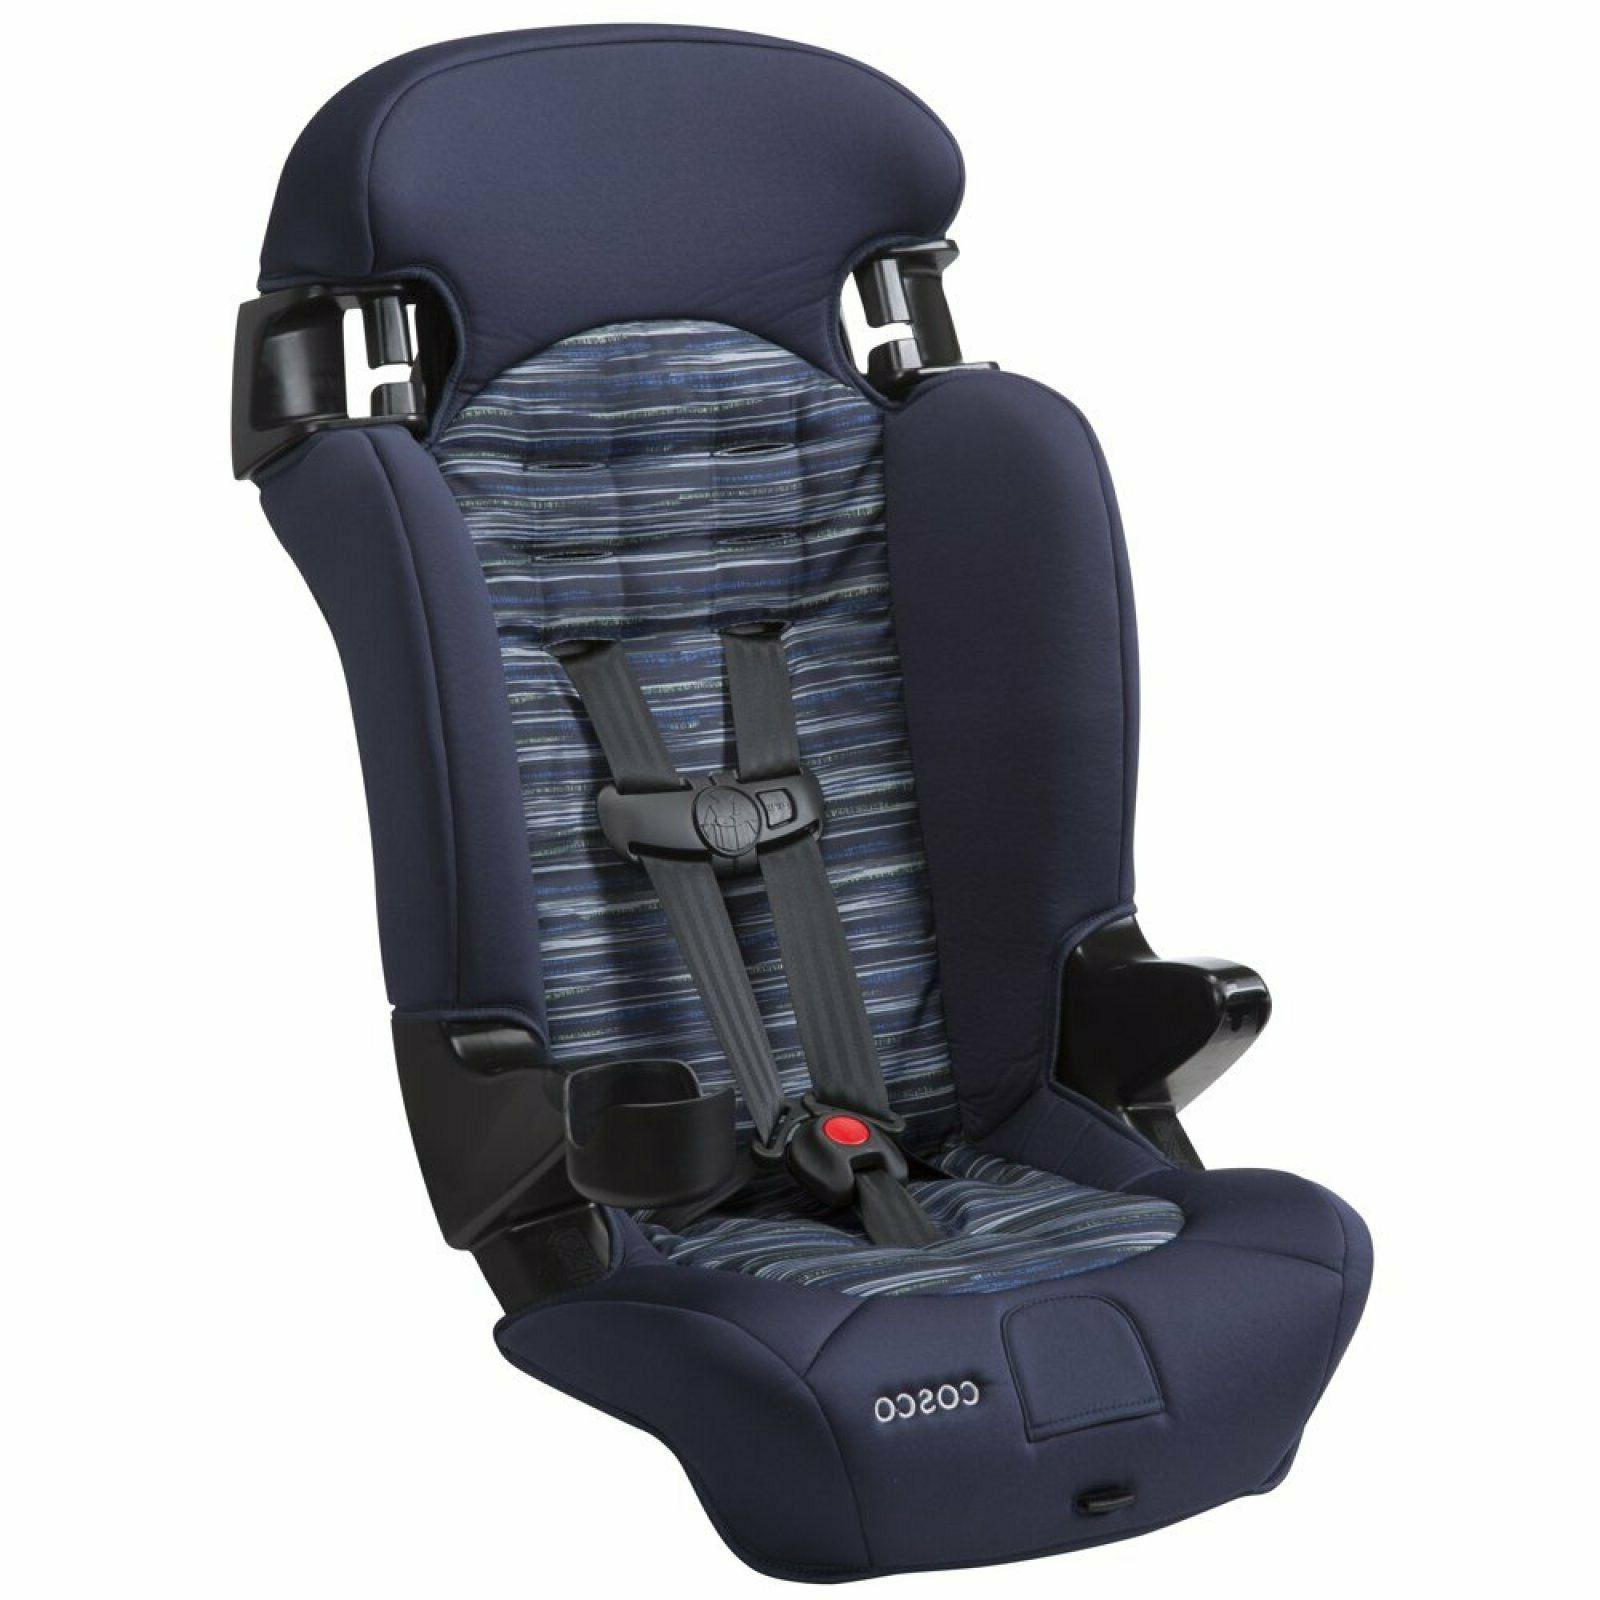 Booster Finale 2 1 Car Seat Highback Harness 5 Point Flight